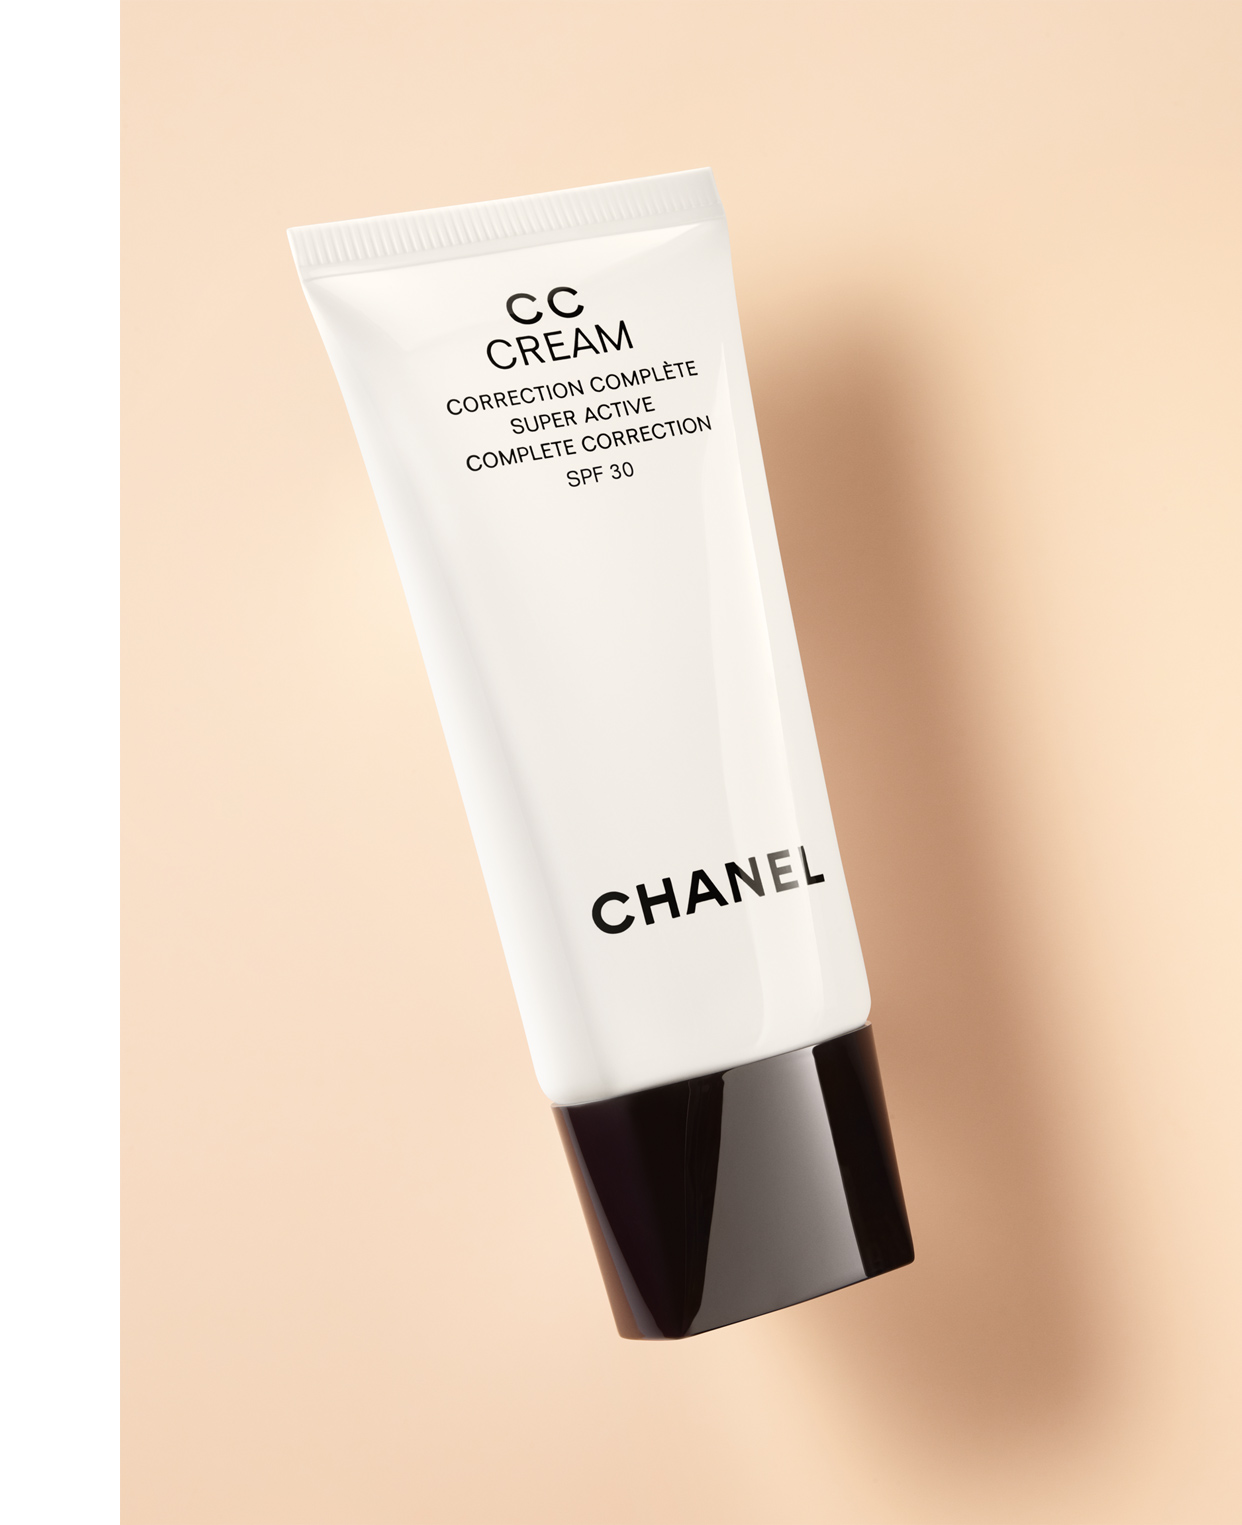 64c3ea93ce CC CREAM - CHANEL - Official site